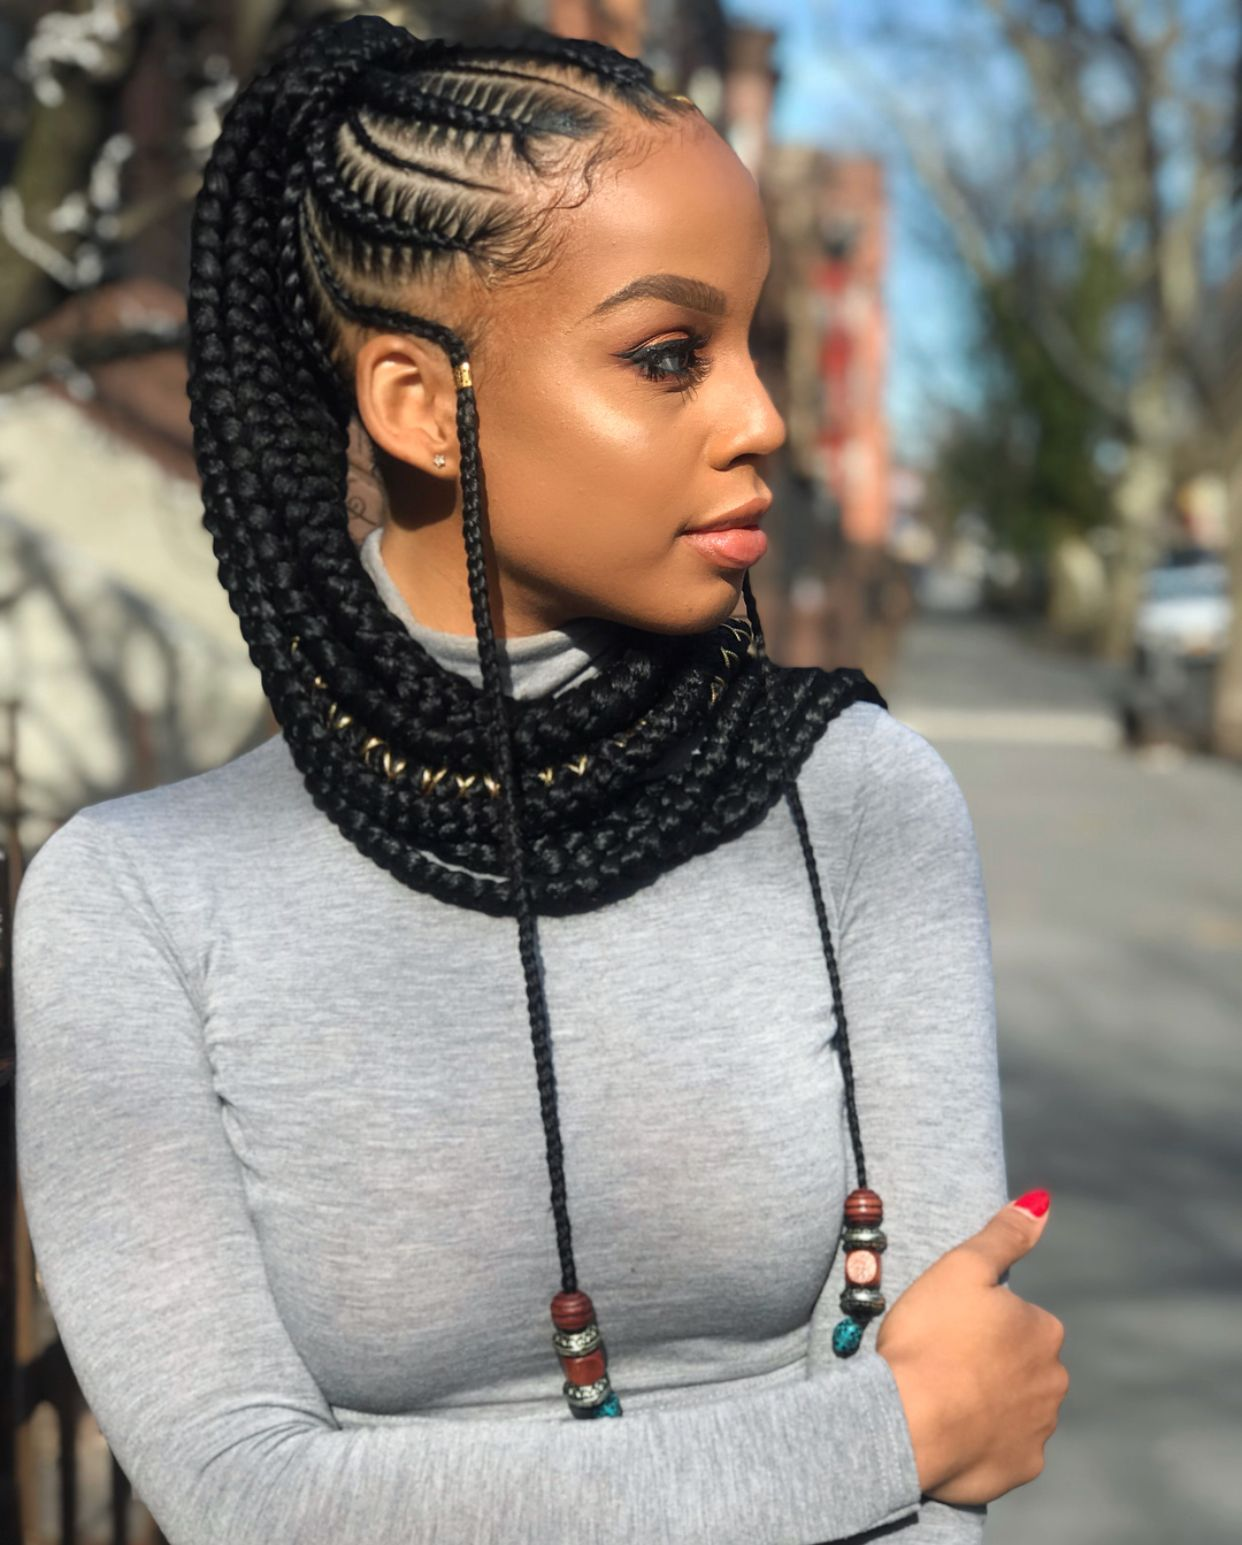 Long Braided Hair Style Kanyget Fashions African Braids Hairstyles Braided Ponytail Hairstyles Black Curly Hair